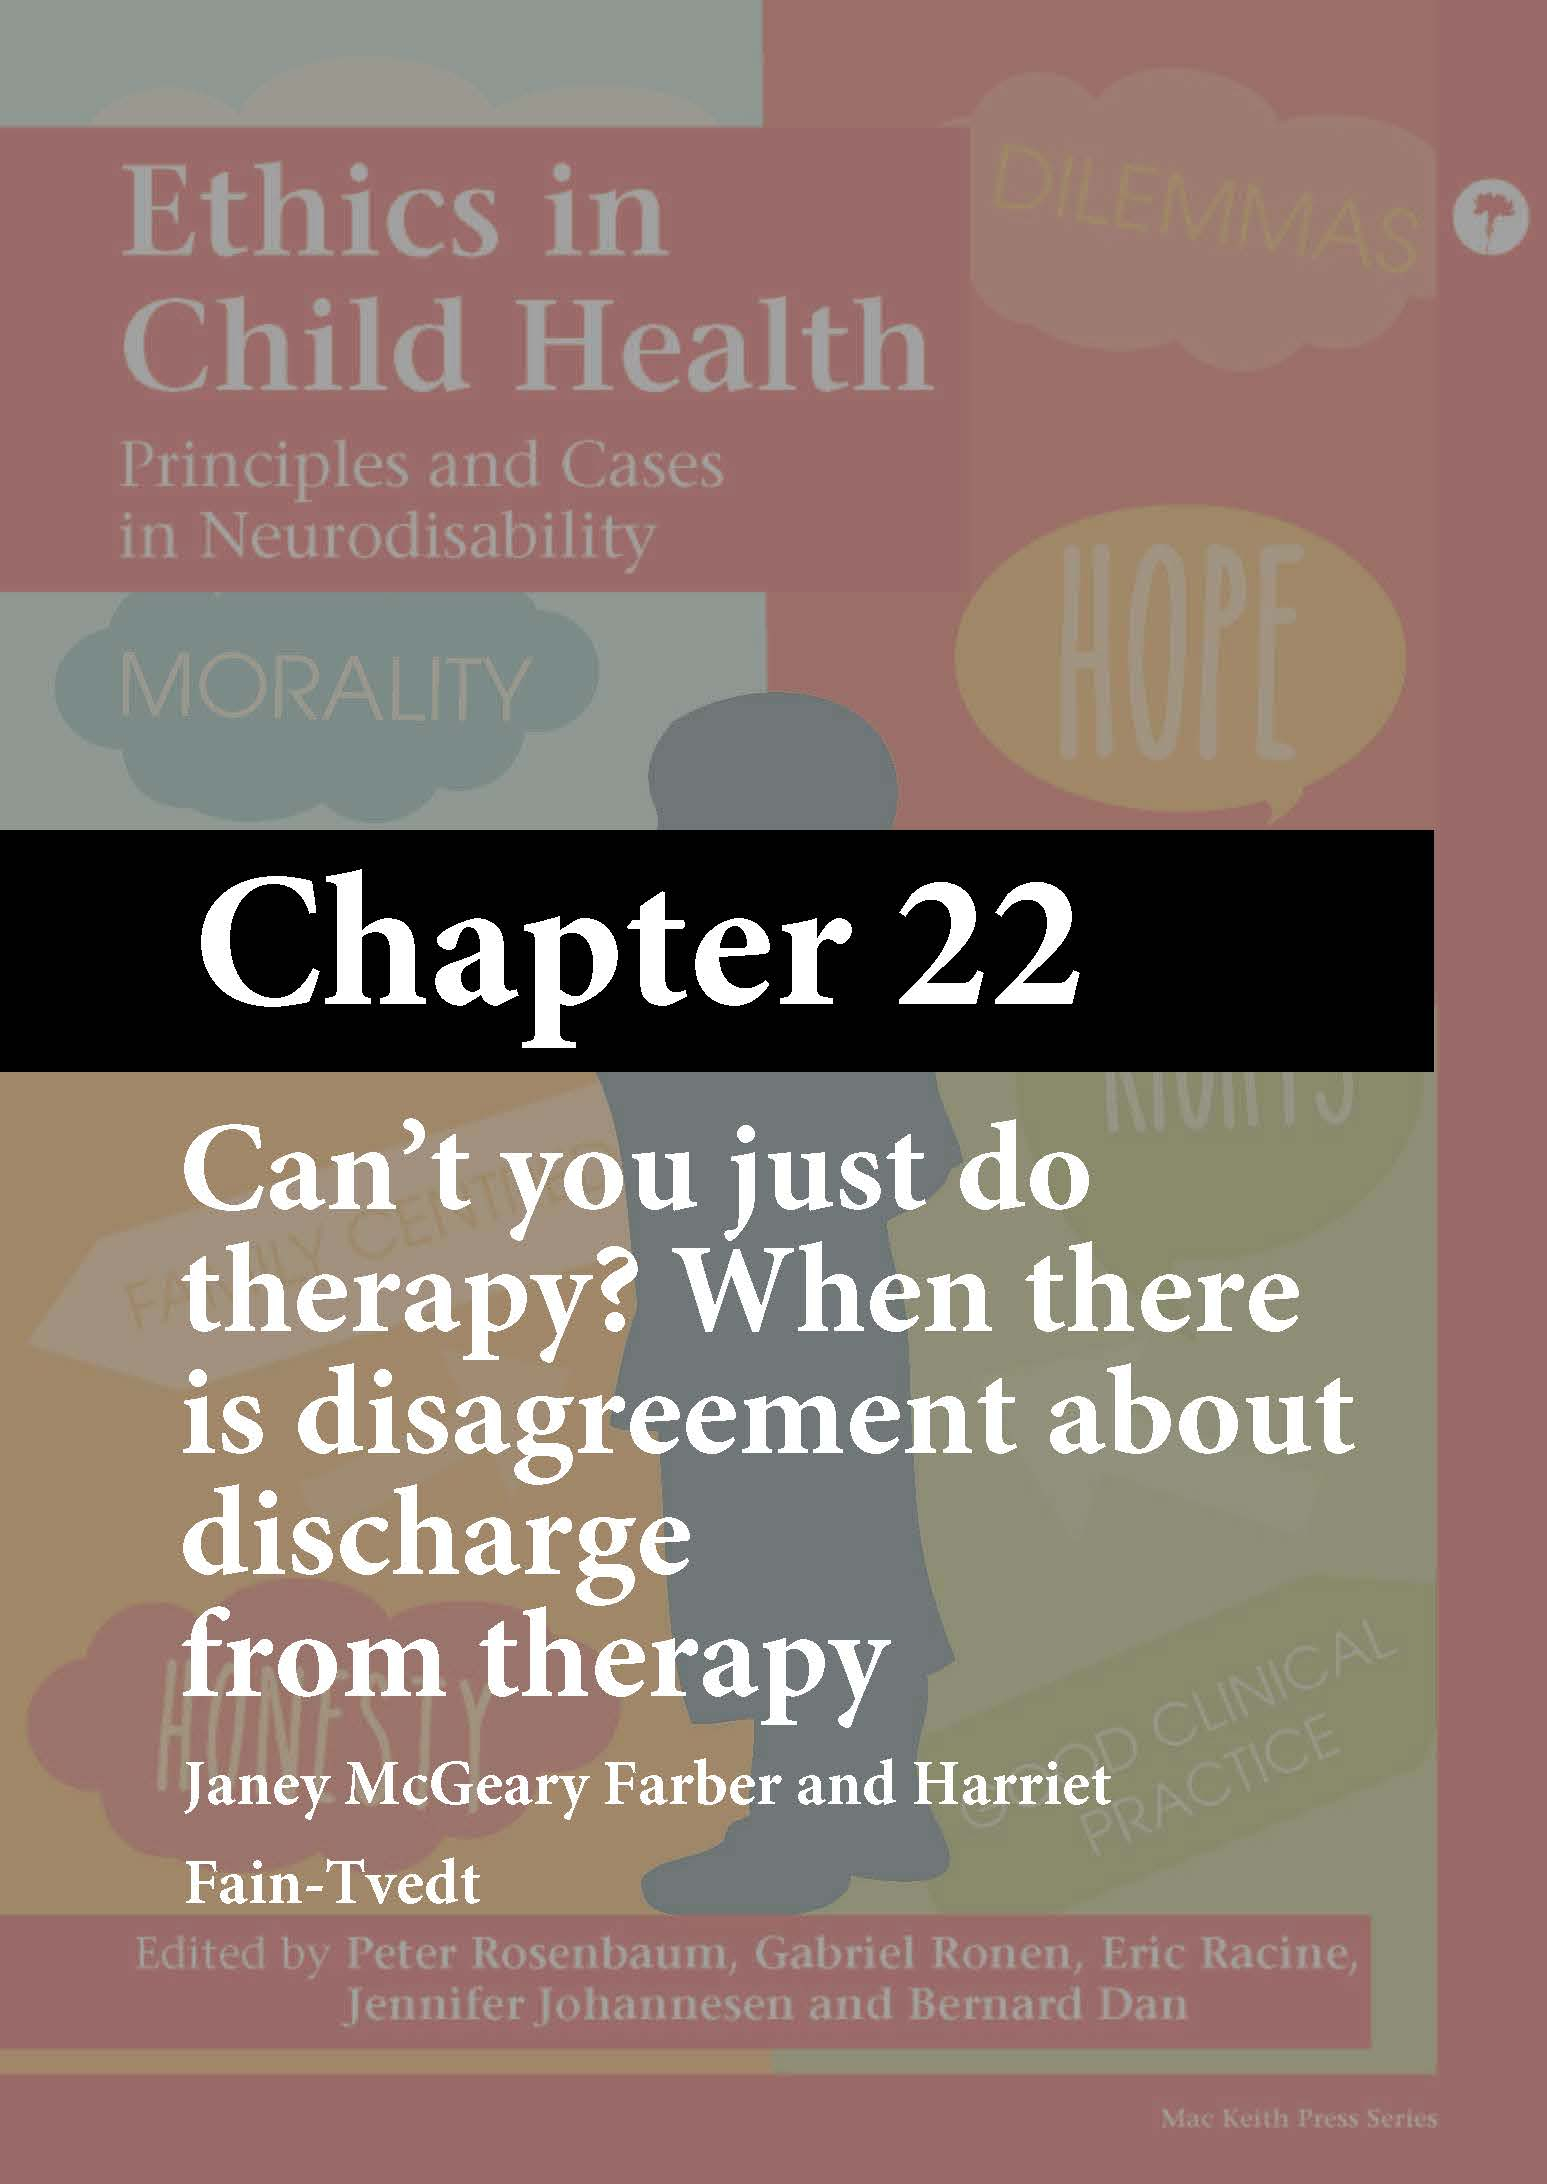 Ethics in Child Health, Rosenbaum, Chapter 22 cover